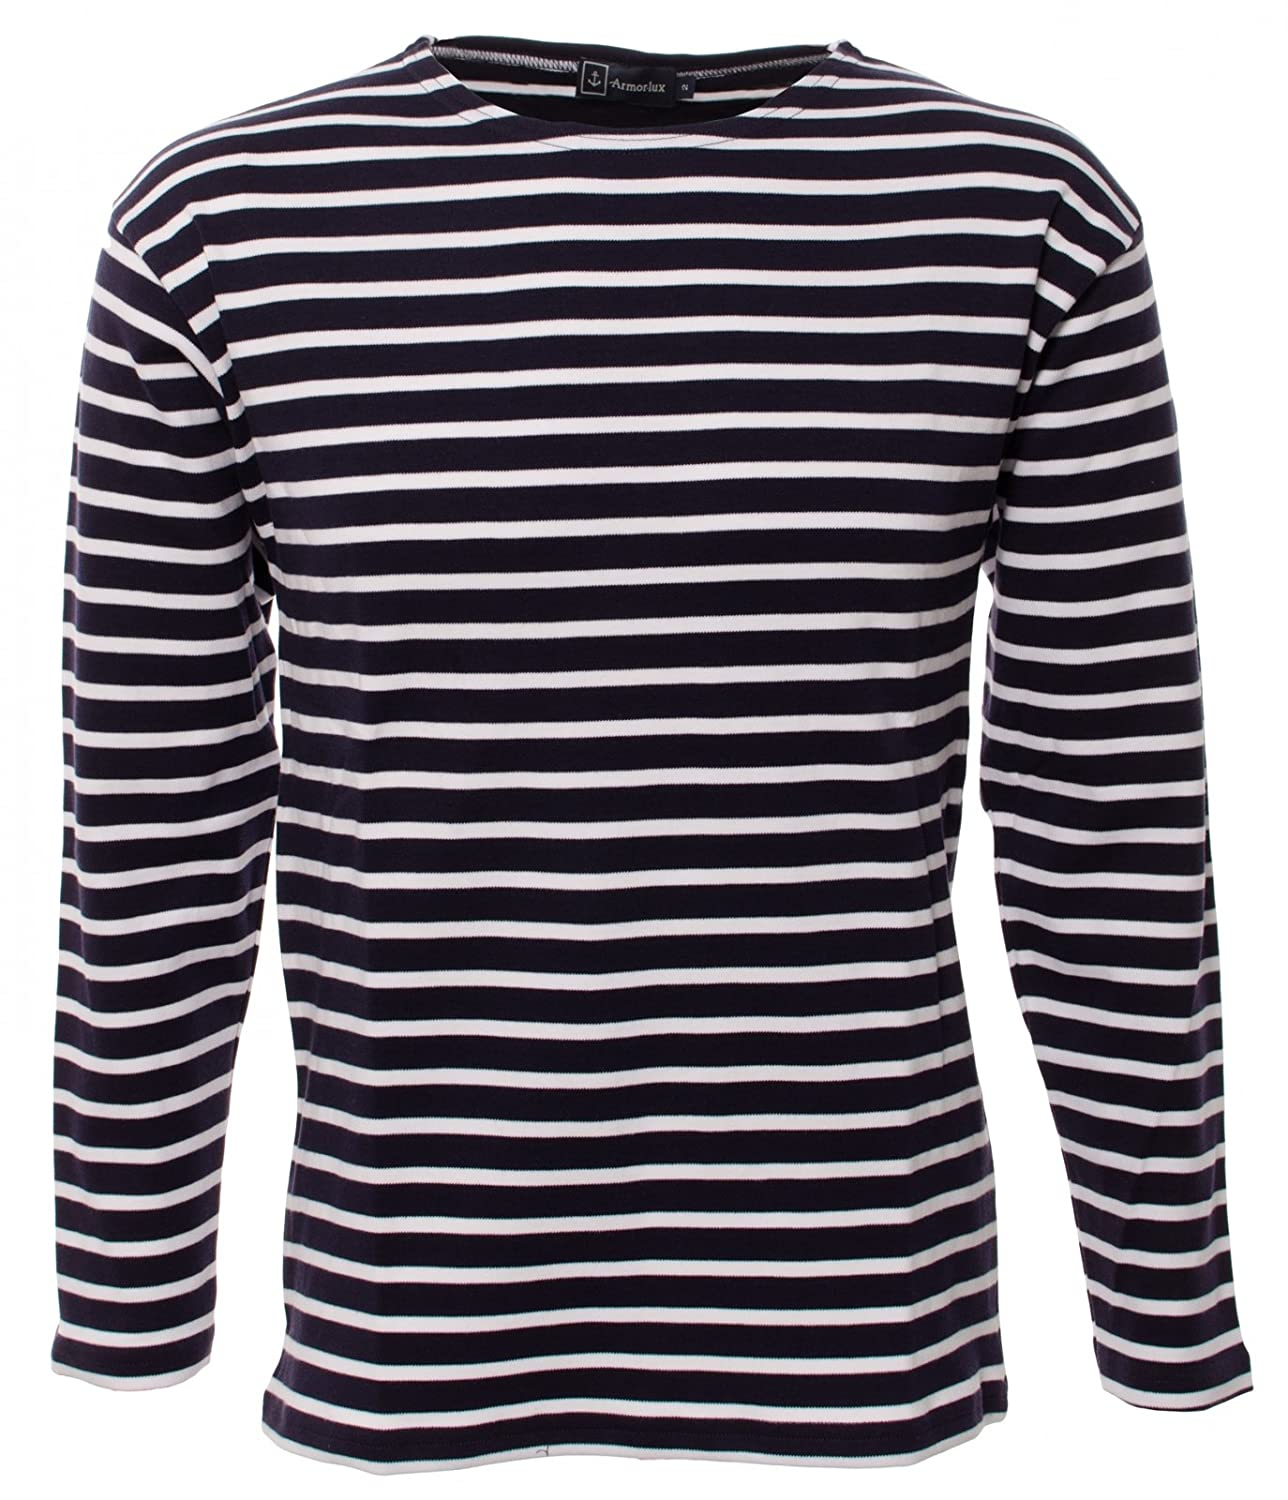 Armor Lux, Striped Breton Classic Shirt, Nautical Fashion